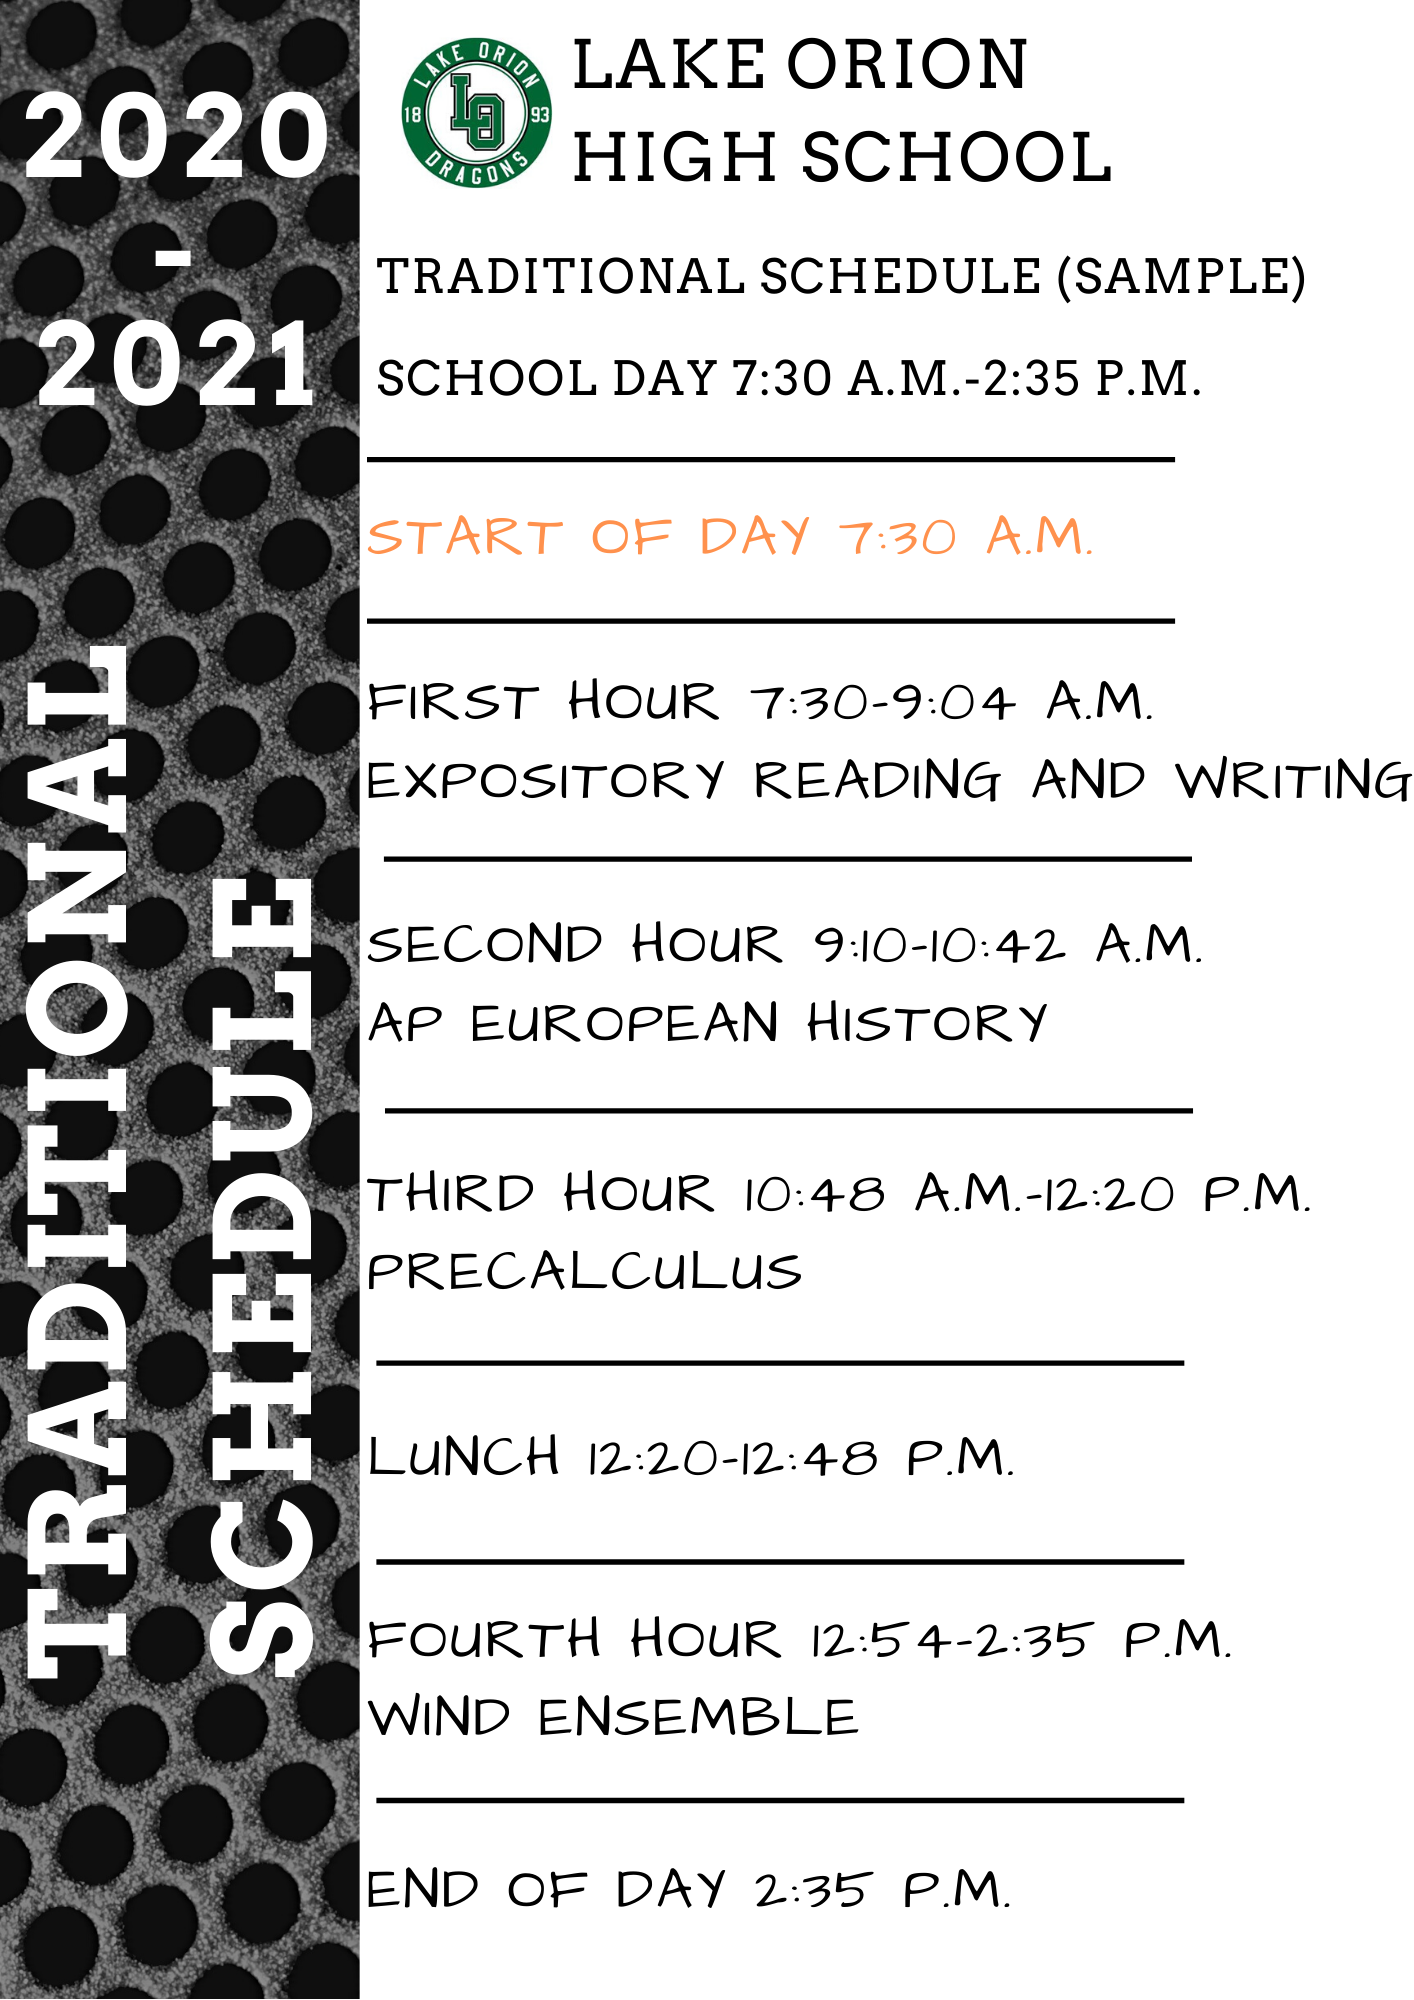 Flexible Schedule Option - Lake Orion Community Schools with regard to Lake Orion School Calendar 2021